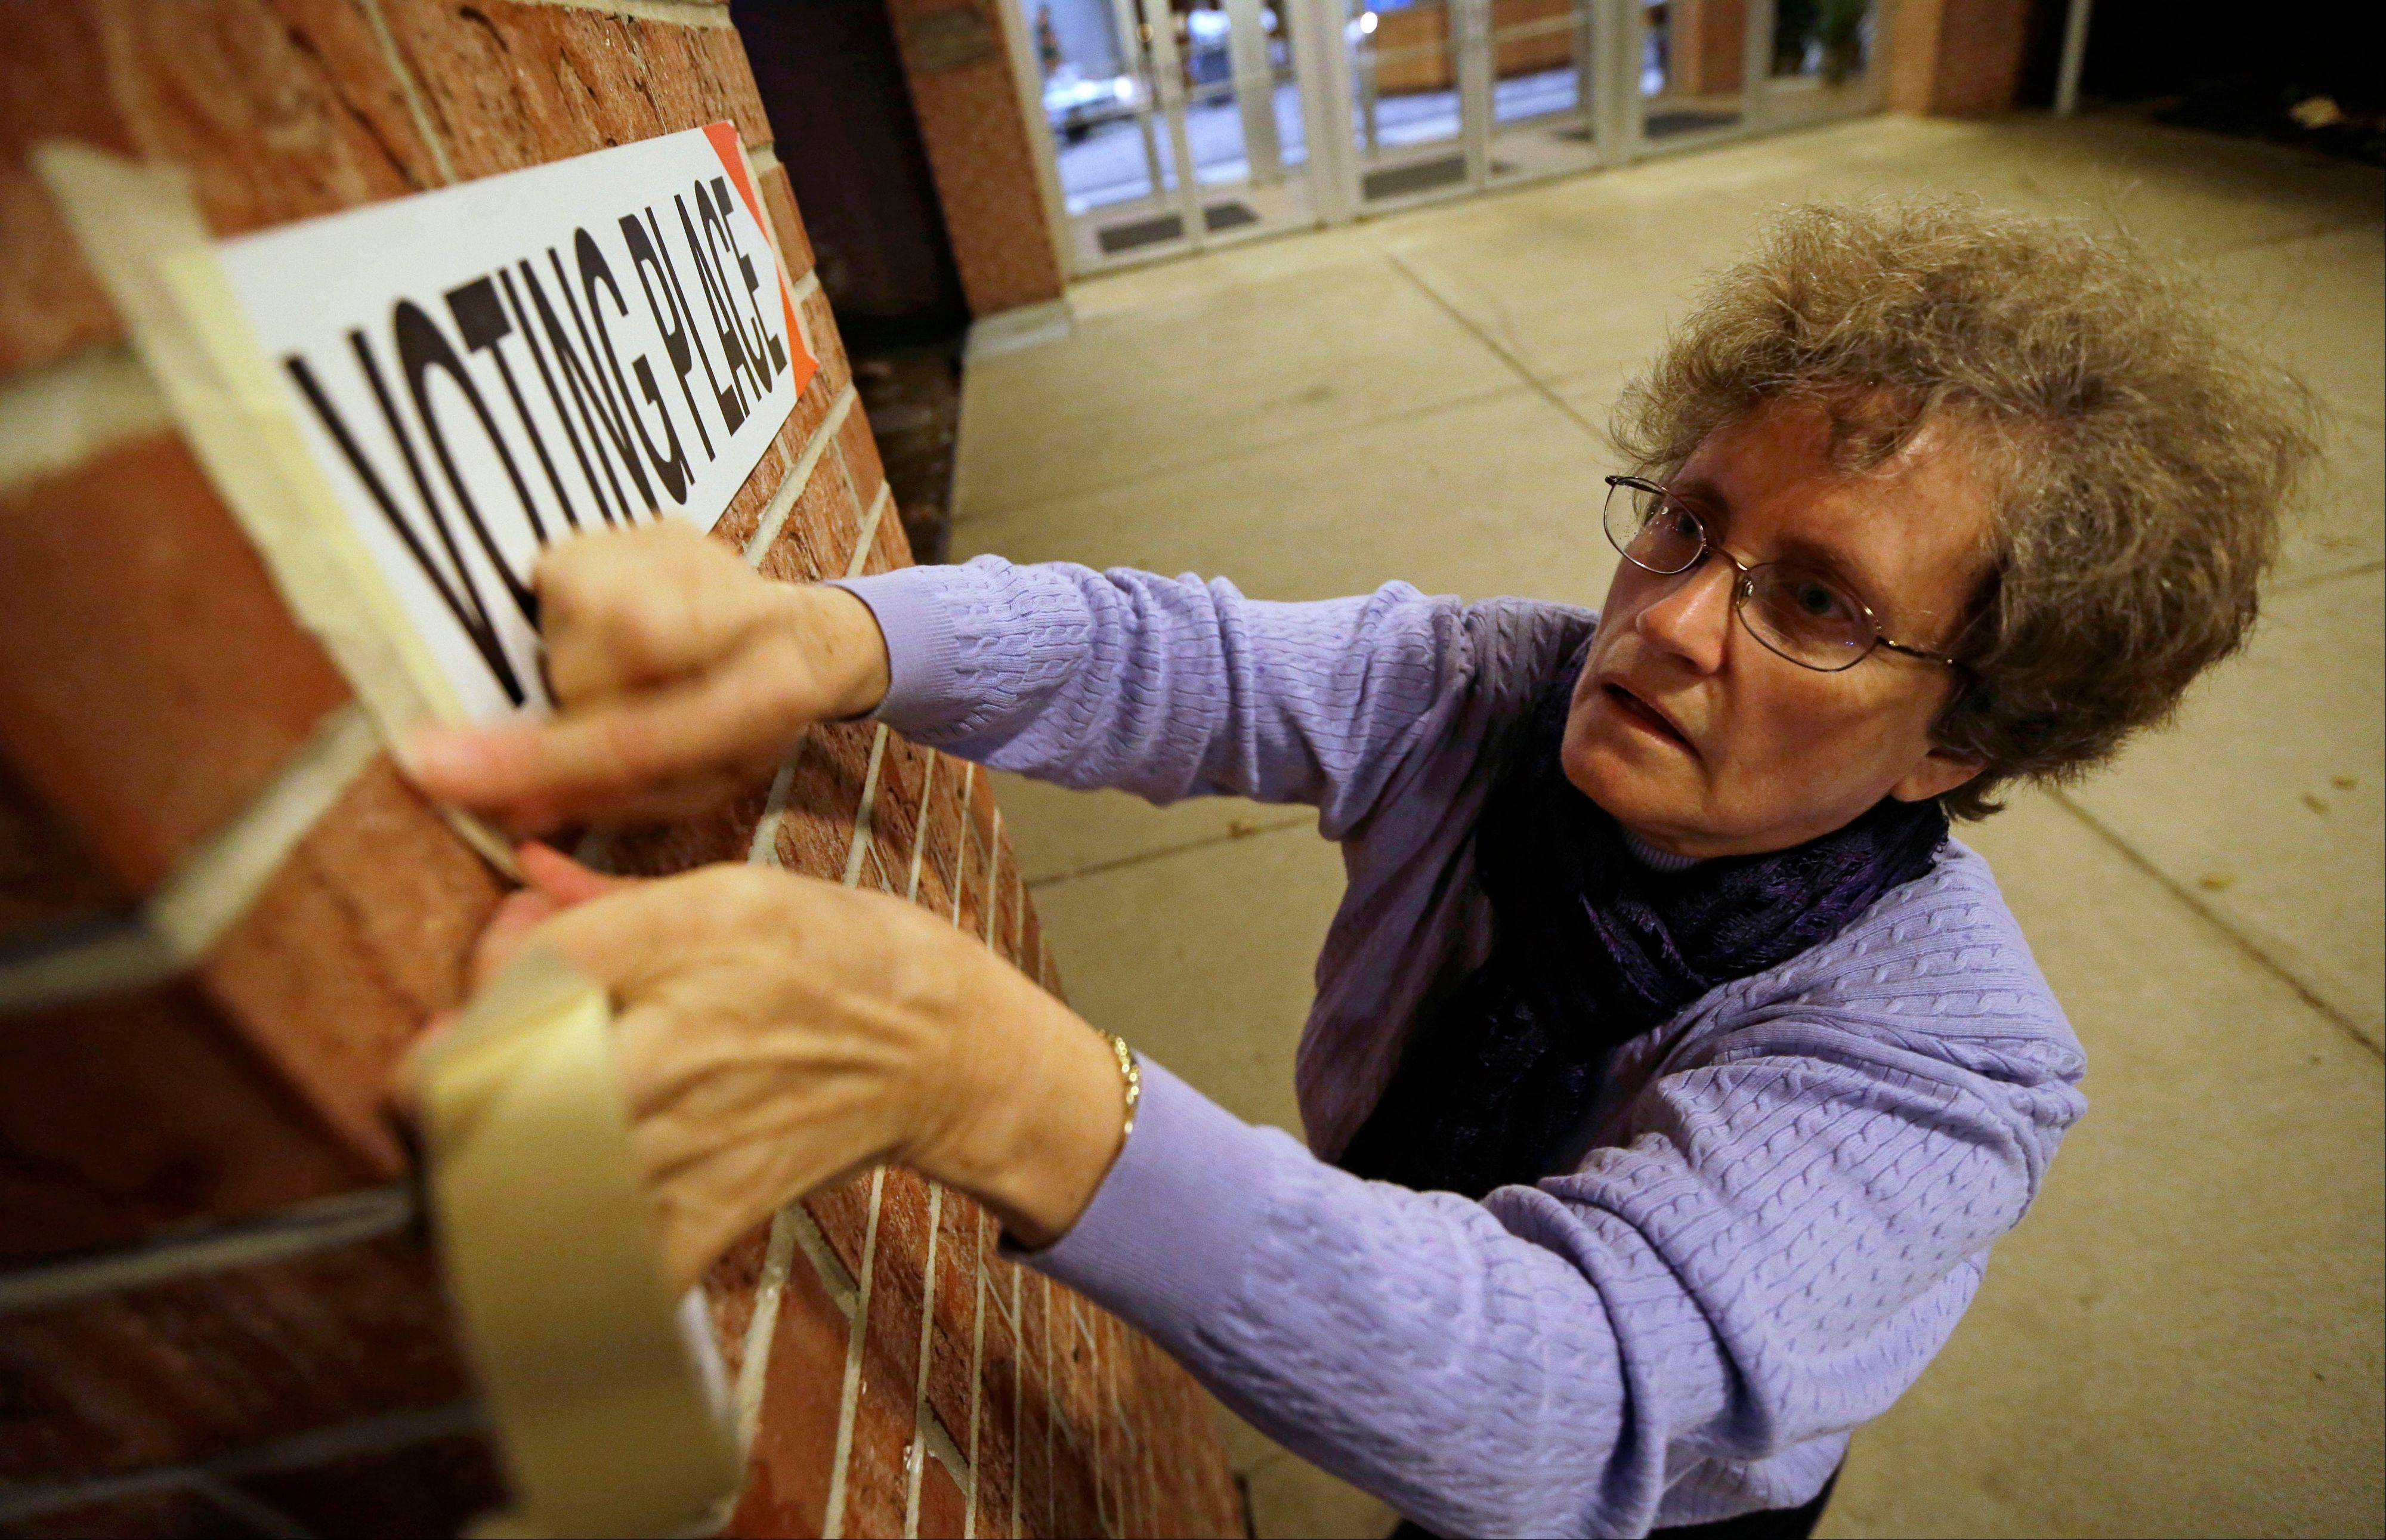 Poll worker Linda Blair hangs a sign before opening Precinct 39 up to allow voters to cast their ballots on Election Day, Tuesday, Nov. 6, 2012, at the First Church of the Open Bible in Des Moines, Iowa.